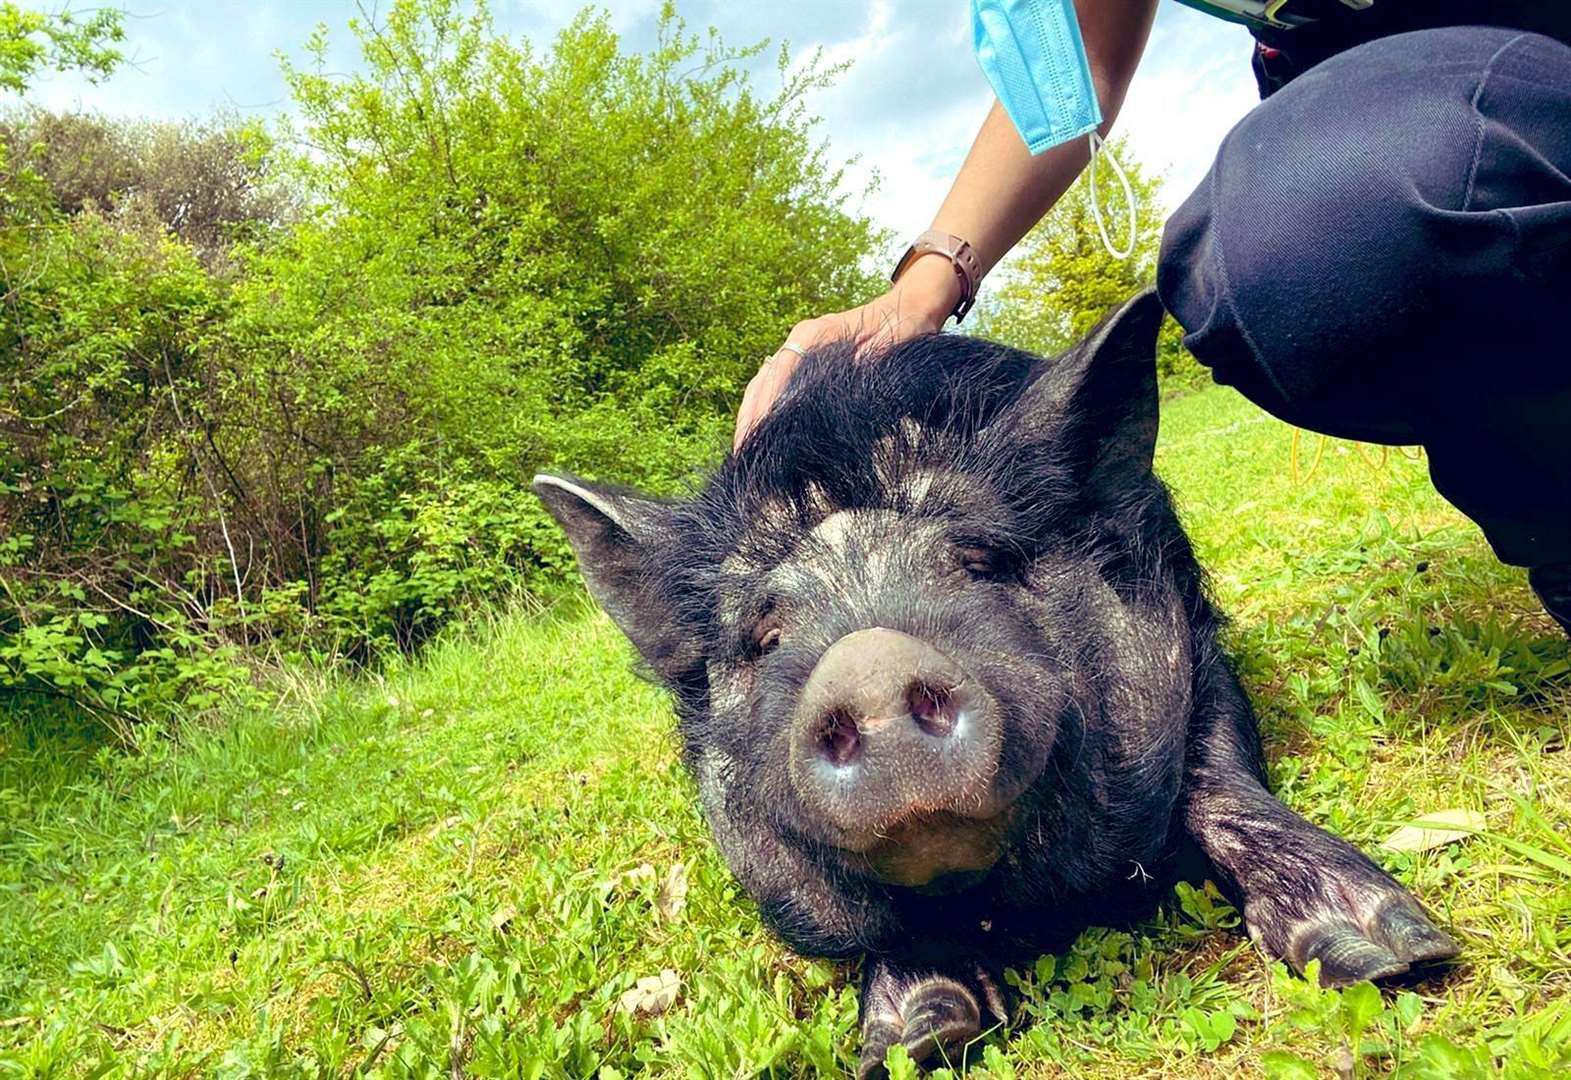 Police catch pig on the run